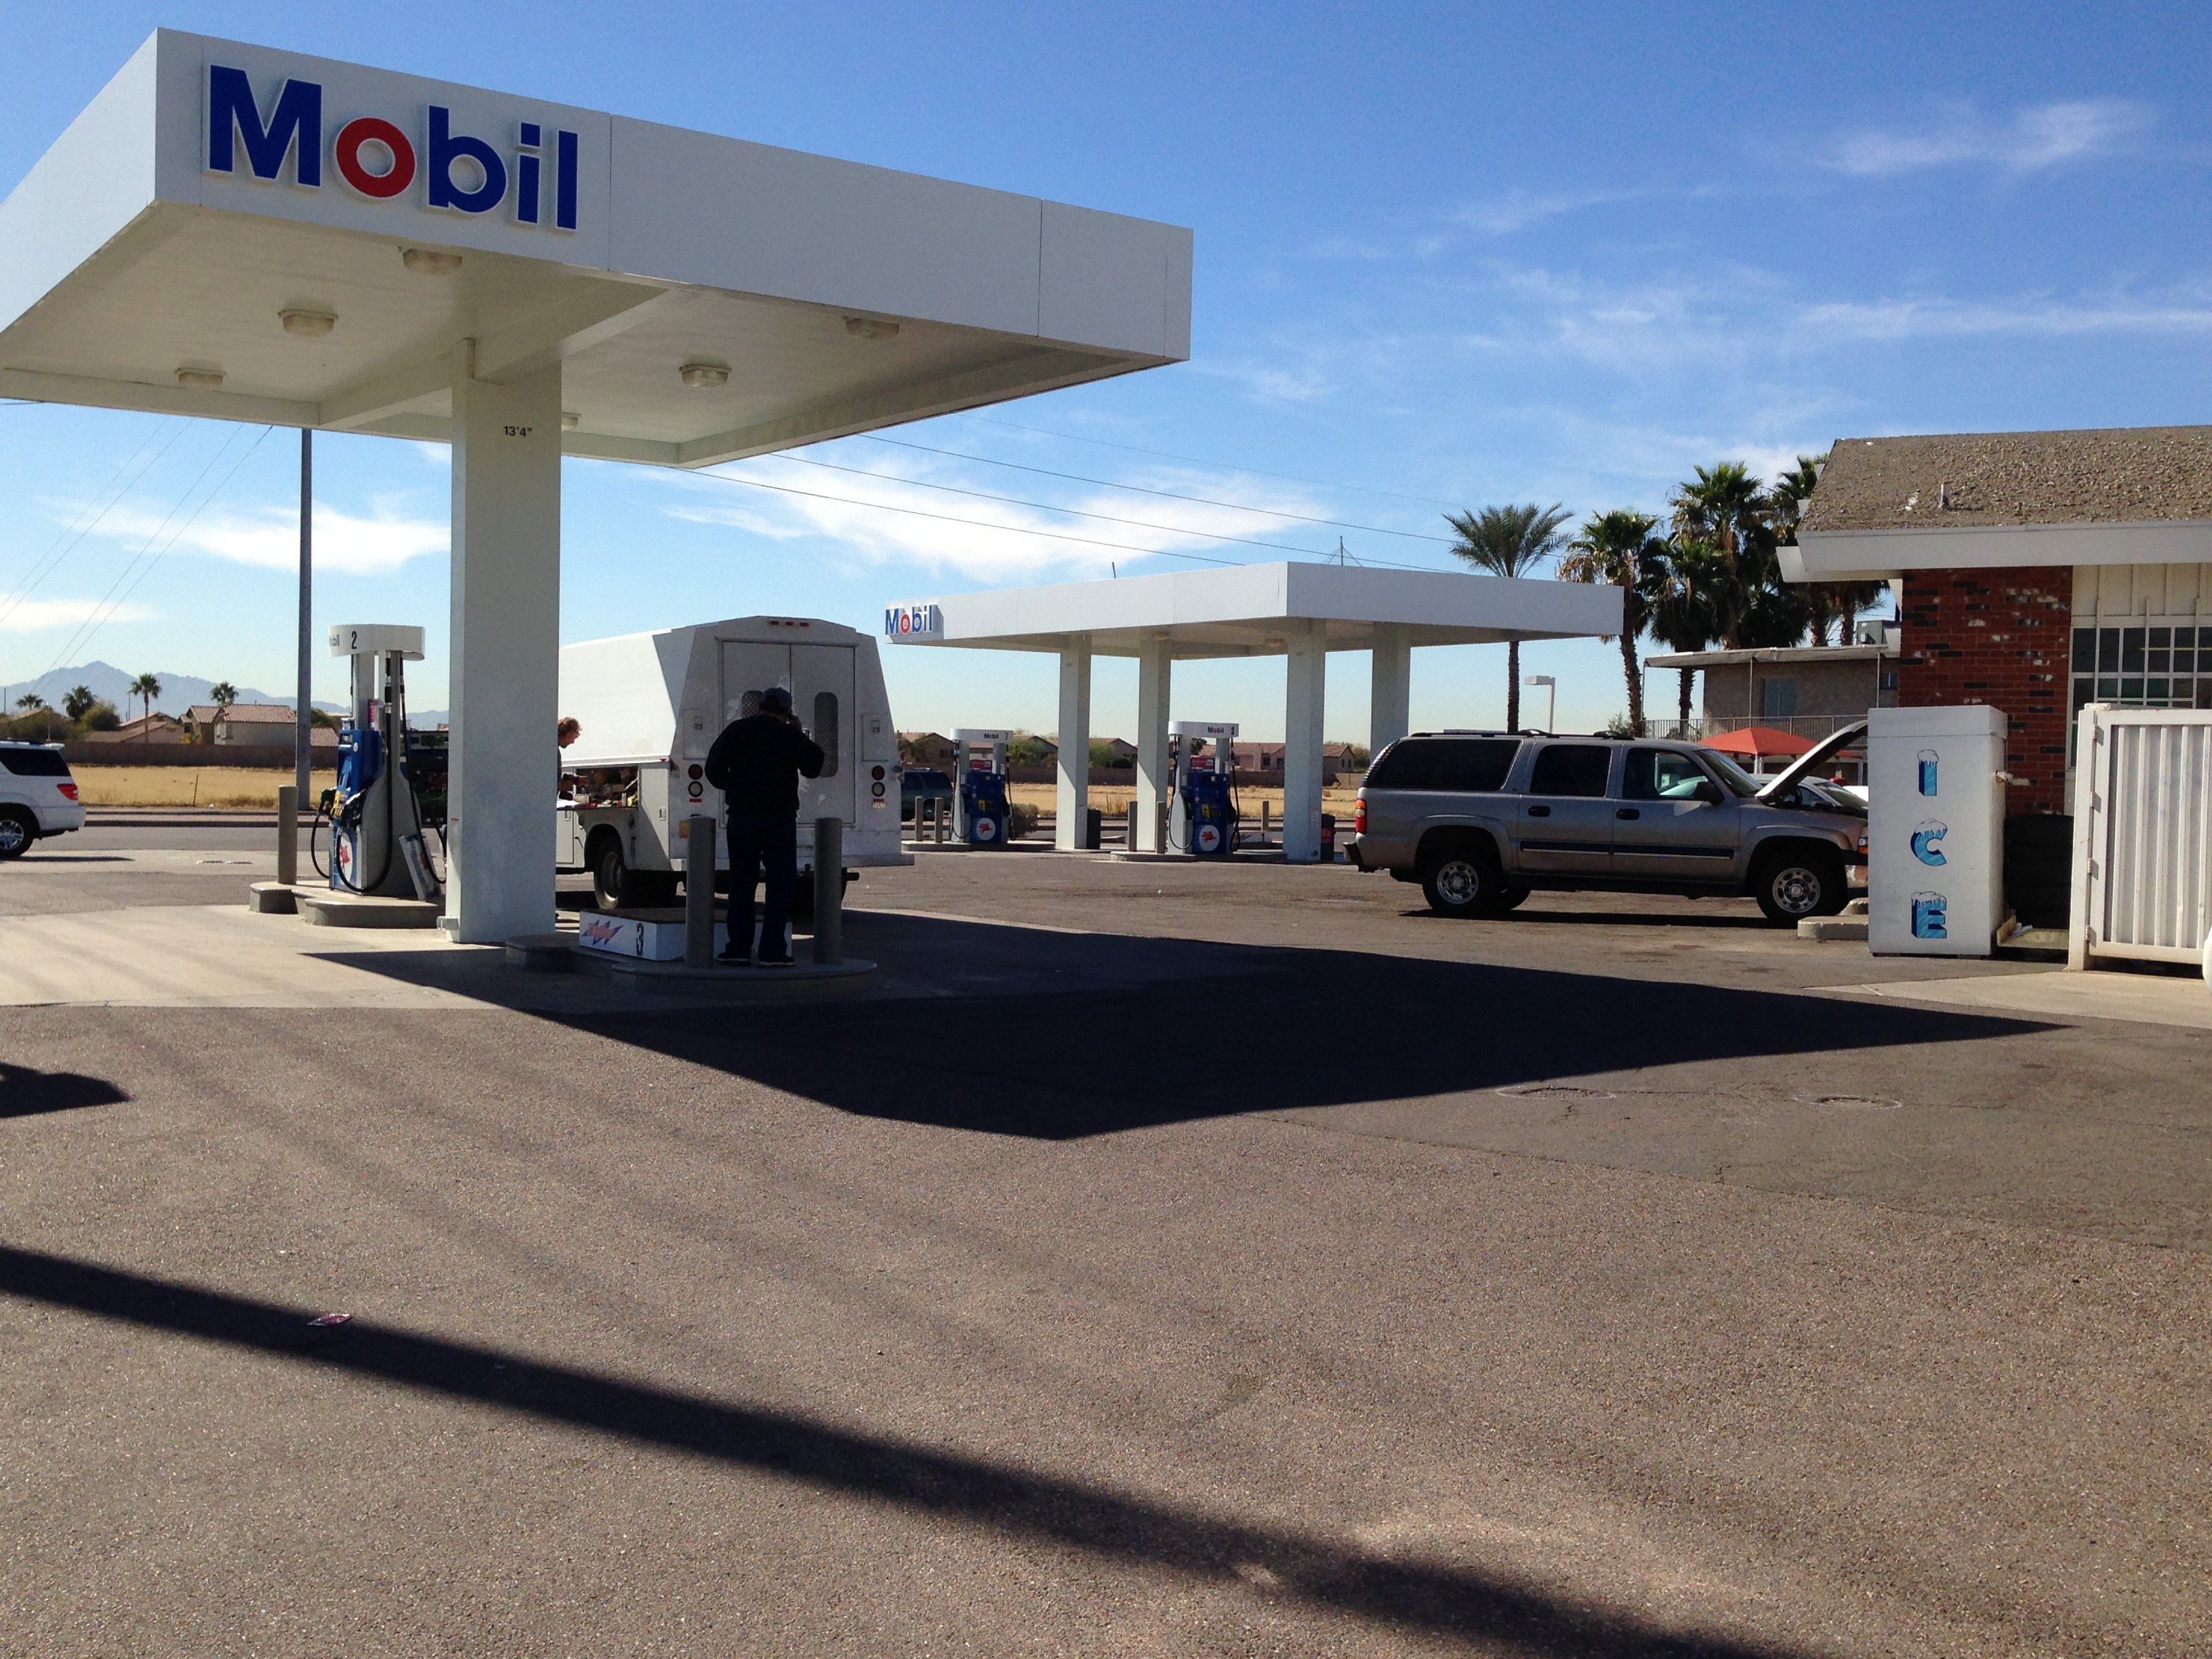 Mobil Gas Canopy